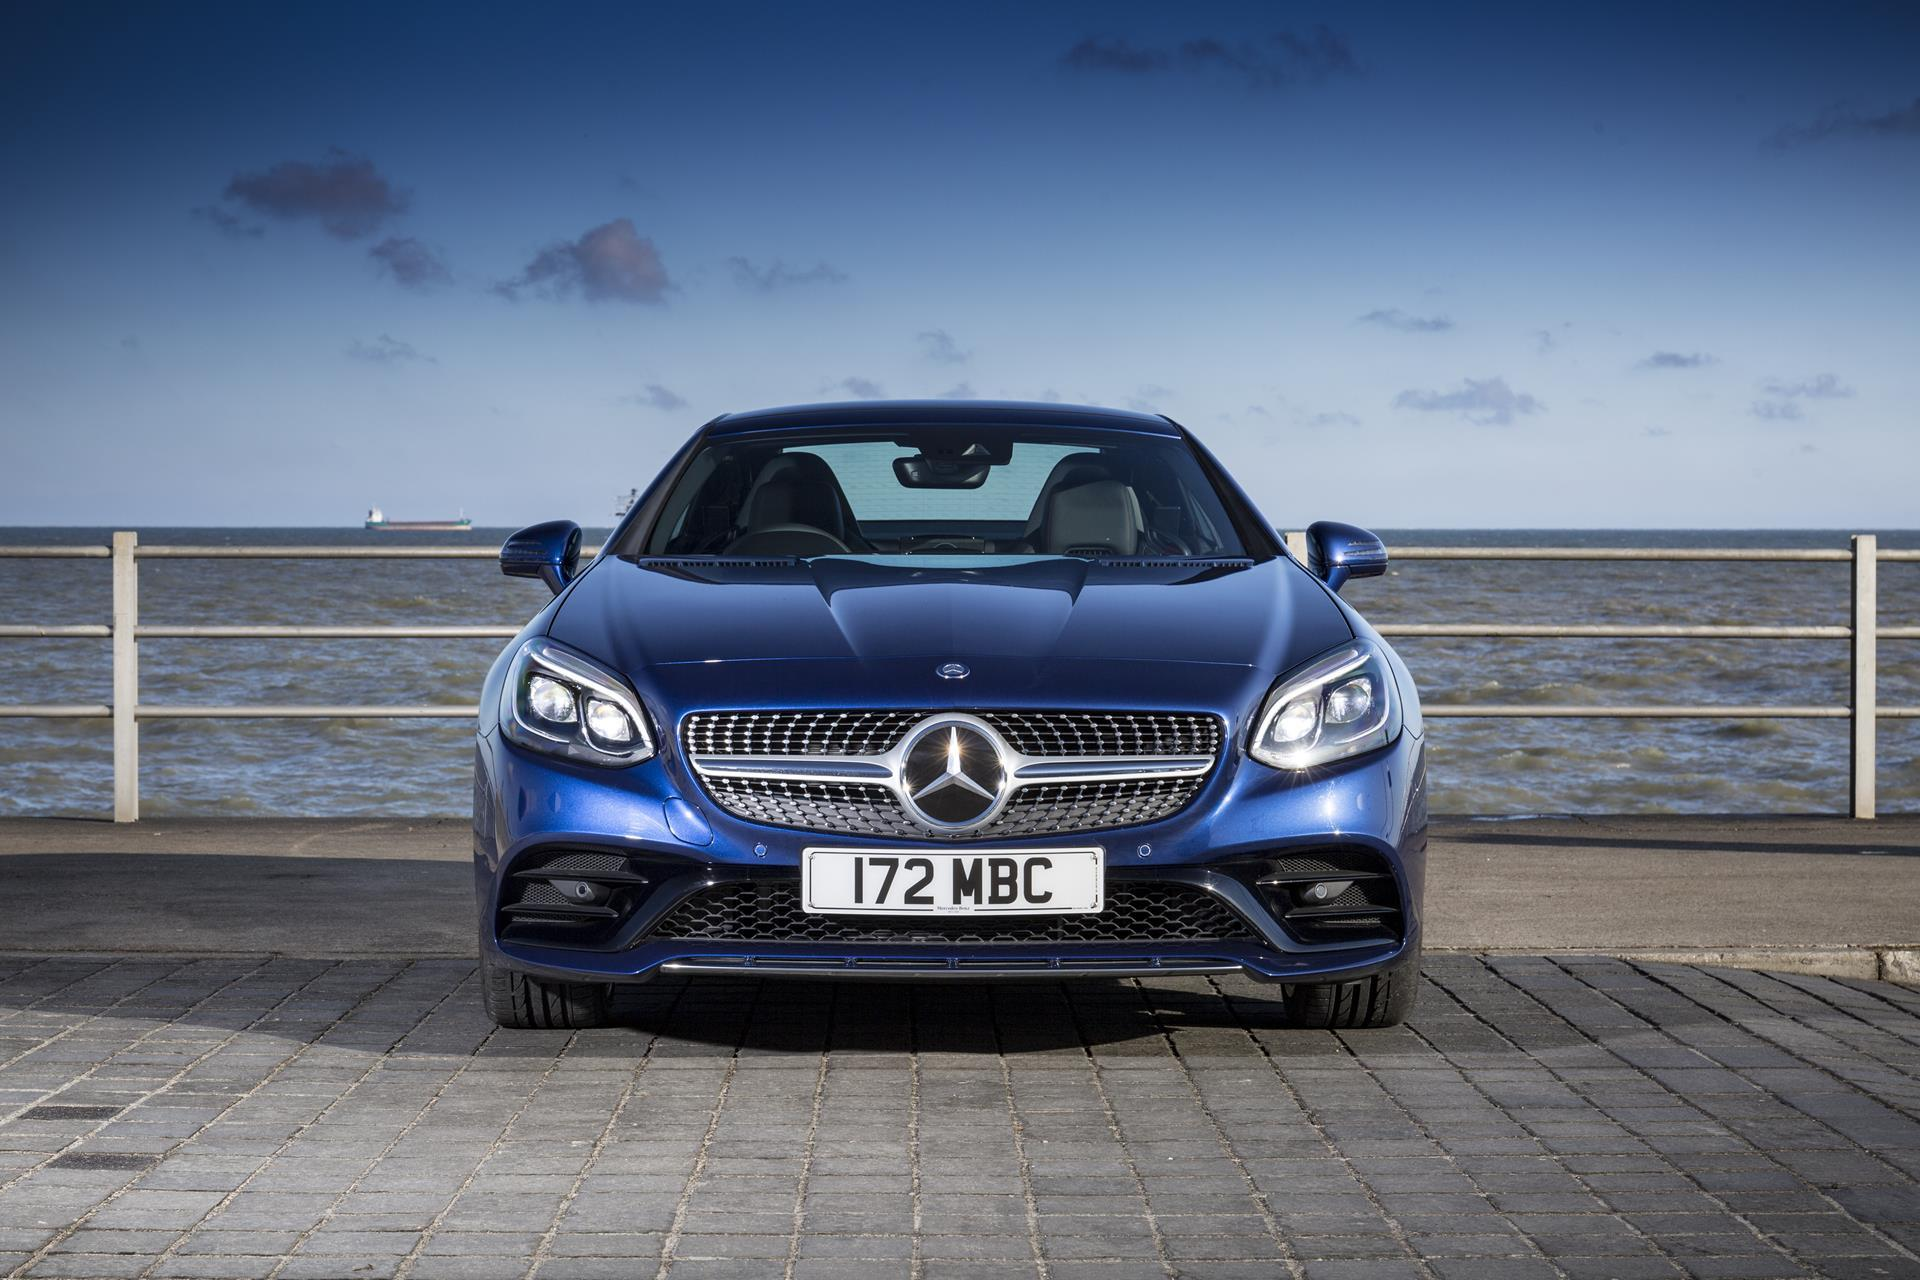 2017 mercedes benz slc 180 news and information for Slc mercedes benz